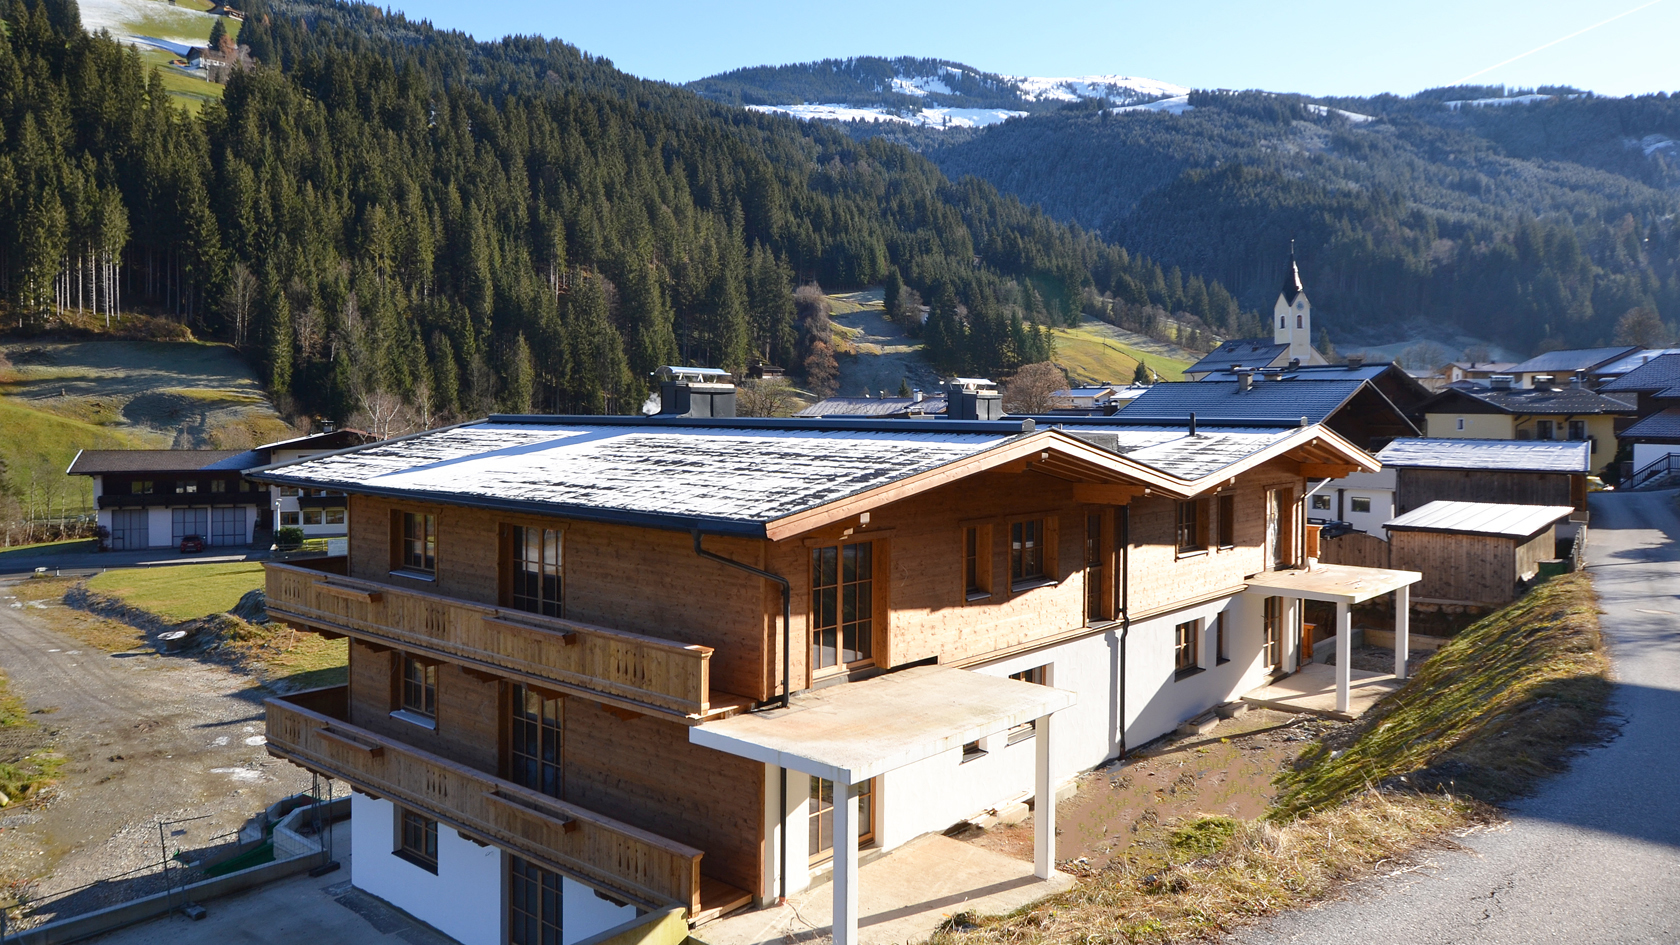 Brixental Residences Apartments, Austria